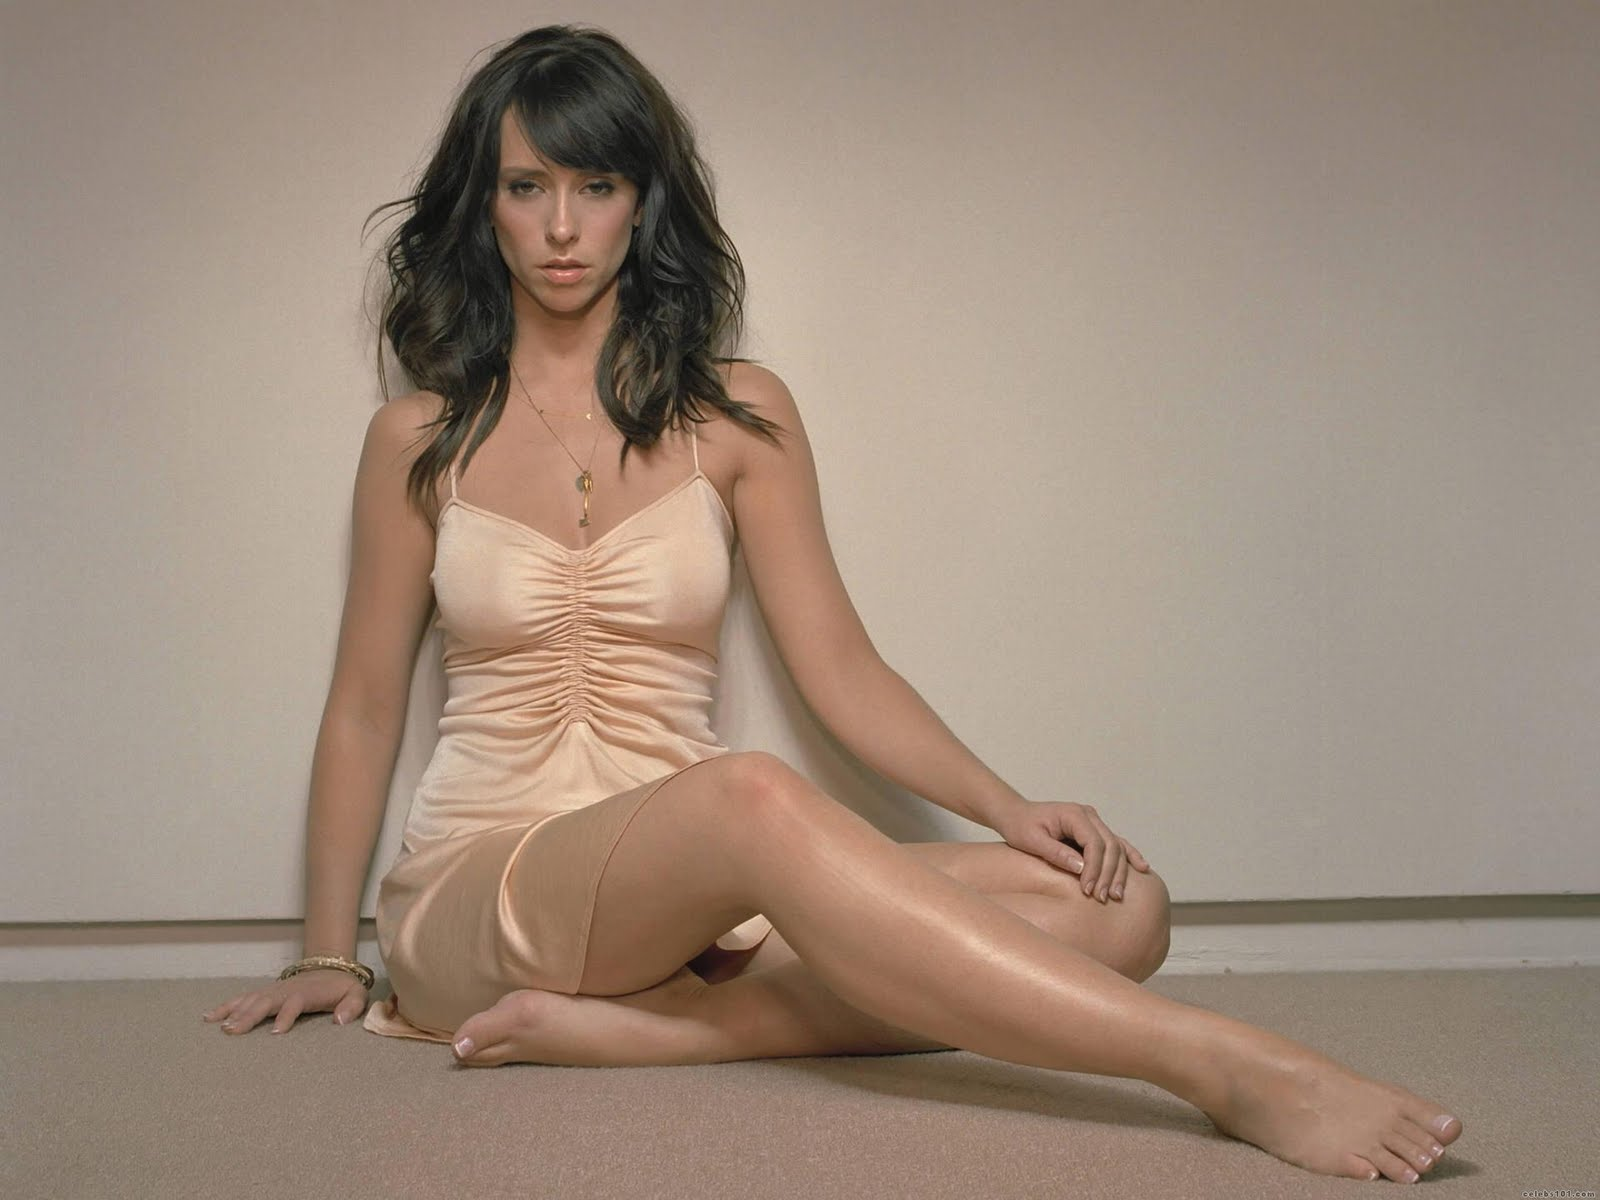 Wallpaper Love And Hot : best of the best: Latest pics of Jennifer Love Hewitt Wallpapers